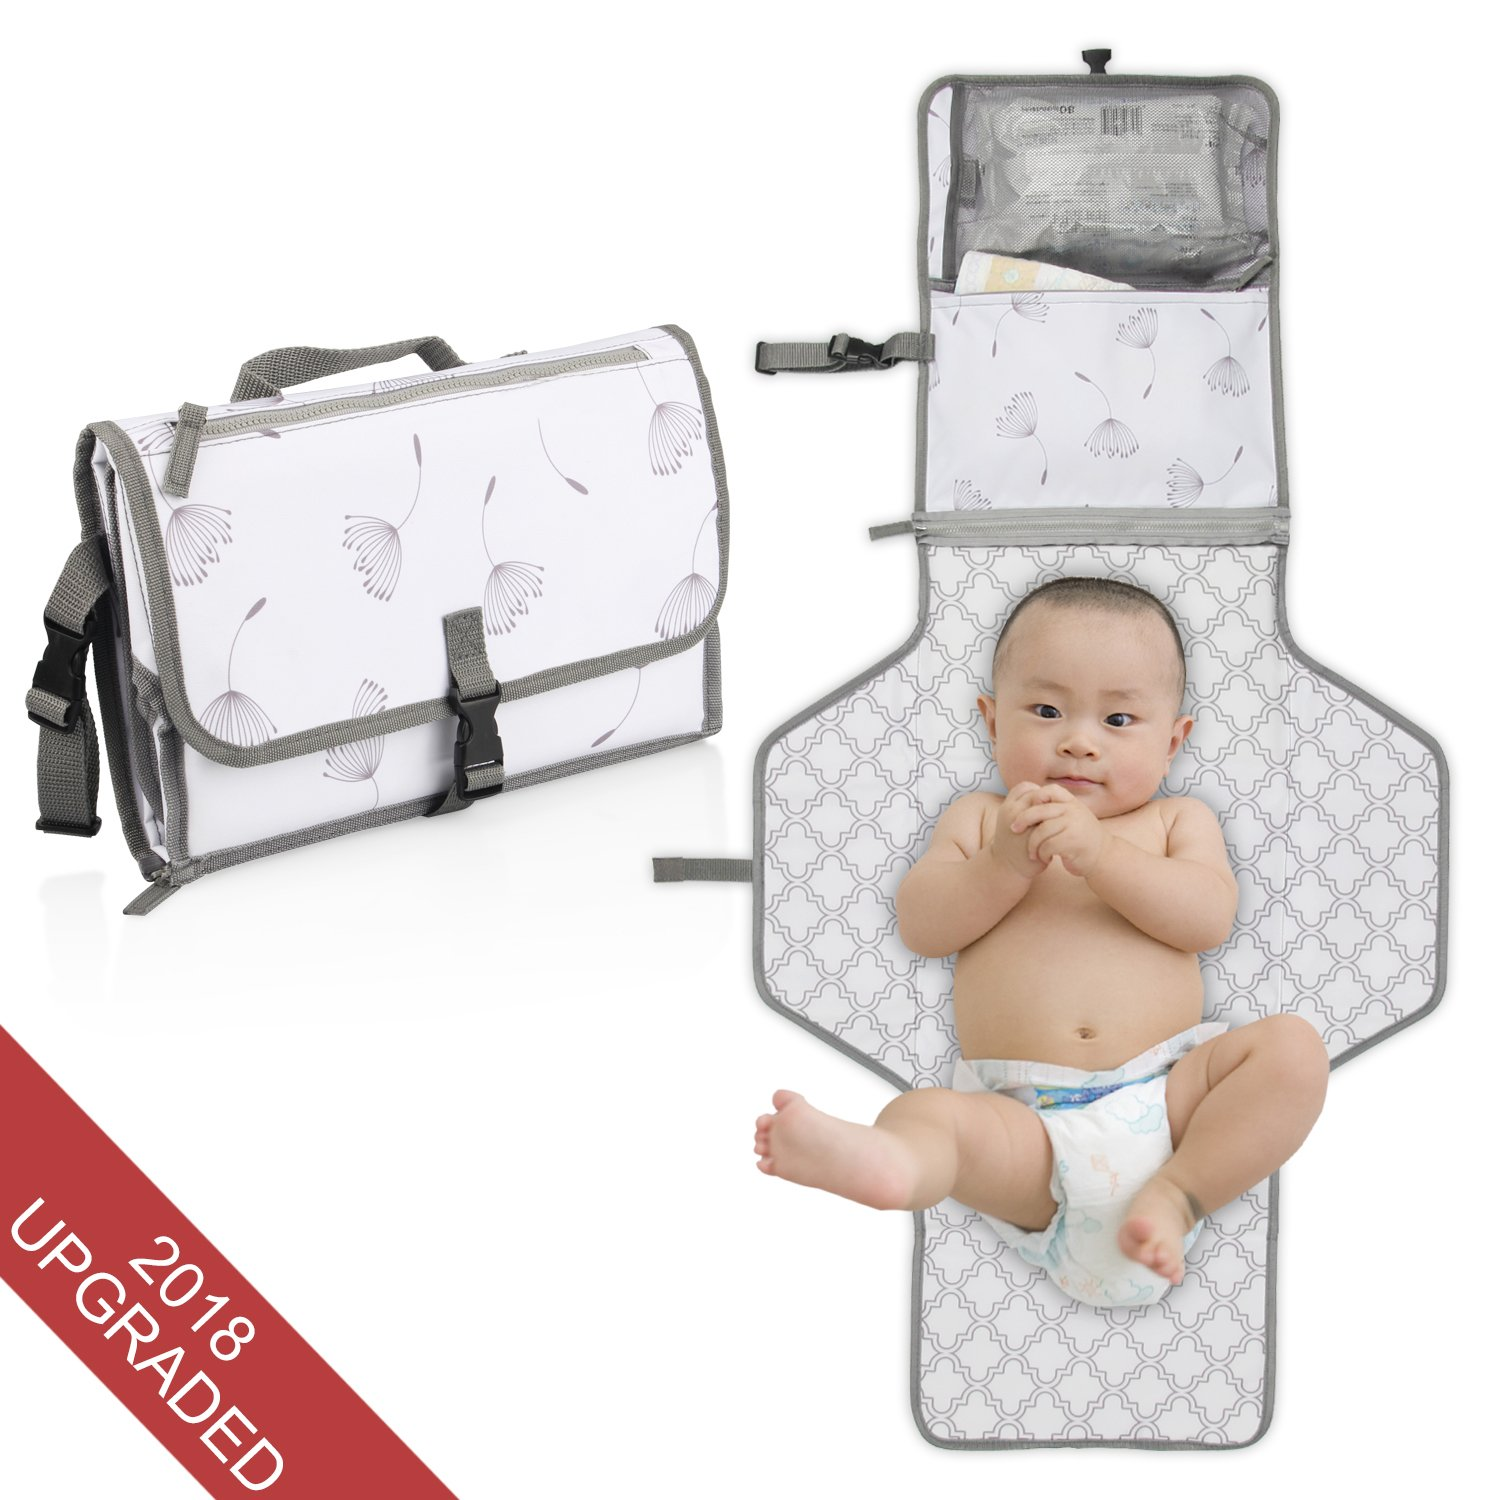 Portable Diaper Changing Pad-Stars Wish Diaper Cluth with Cushioned Baby Changed Pad Kit to Travel with Waterproof and Flodable , infant Changing Diaper on the Mat for Newborn and Toddler